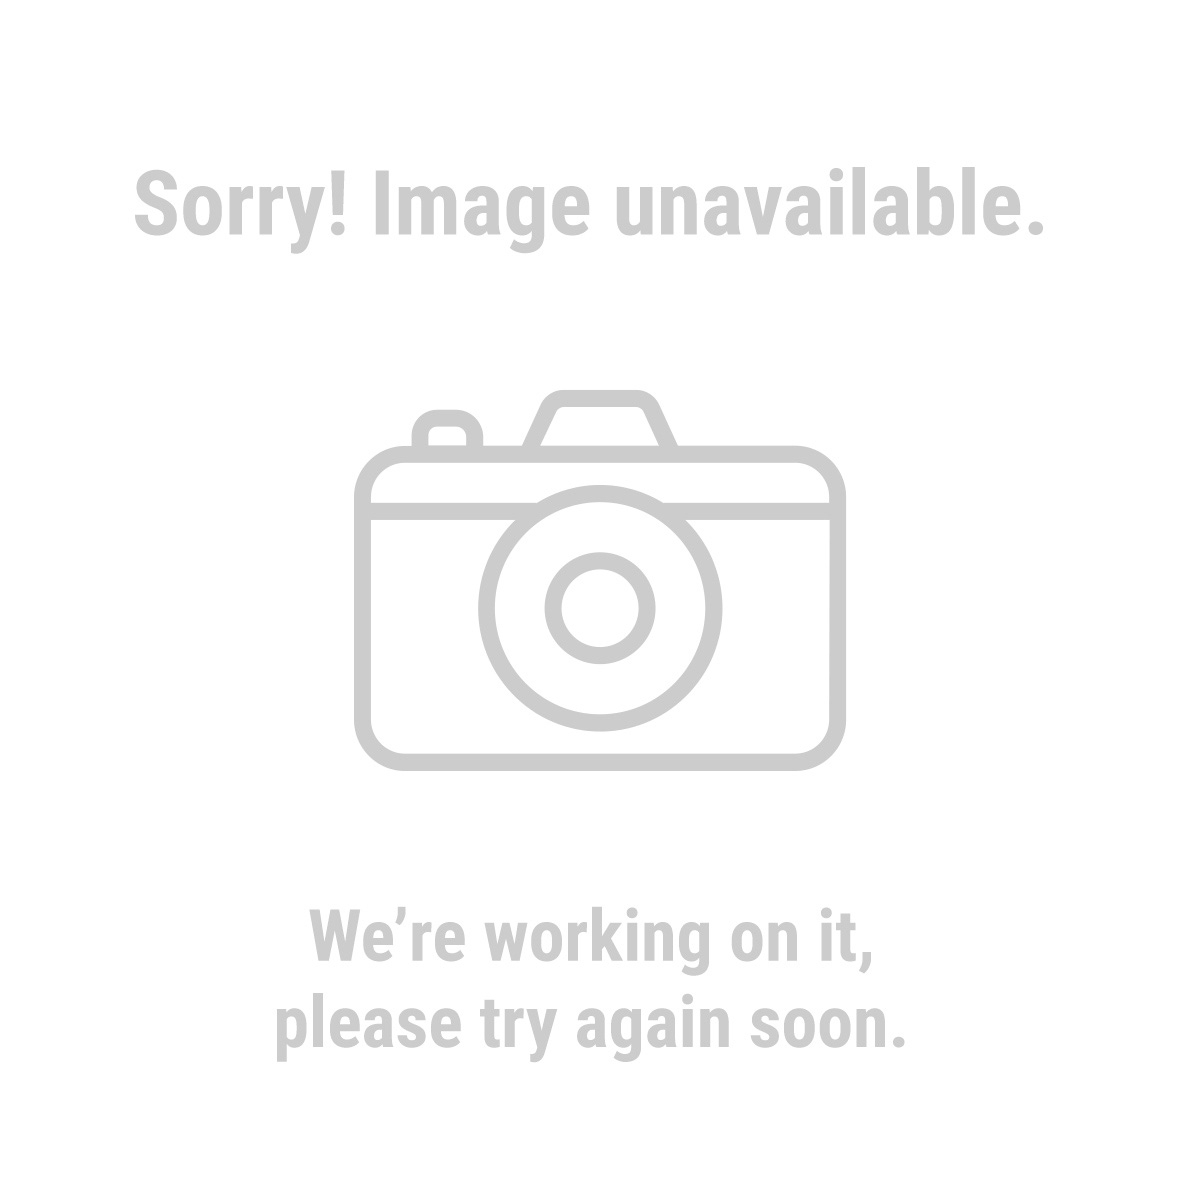 Predator Engines 69727 6.5Hp (212Cc) Ohv Horizontal Shaft Gas Engine Epa/Carb